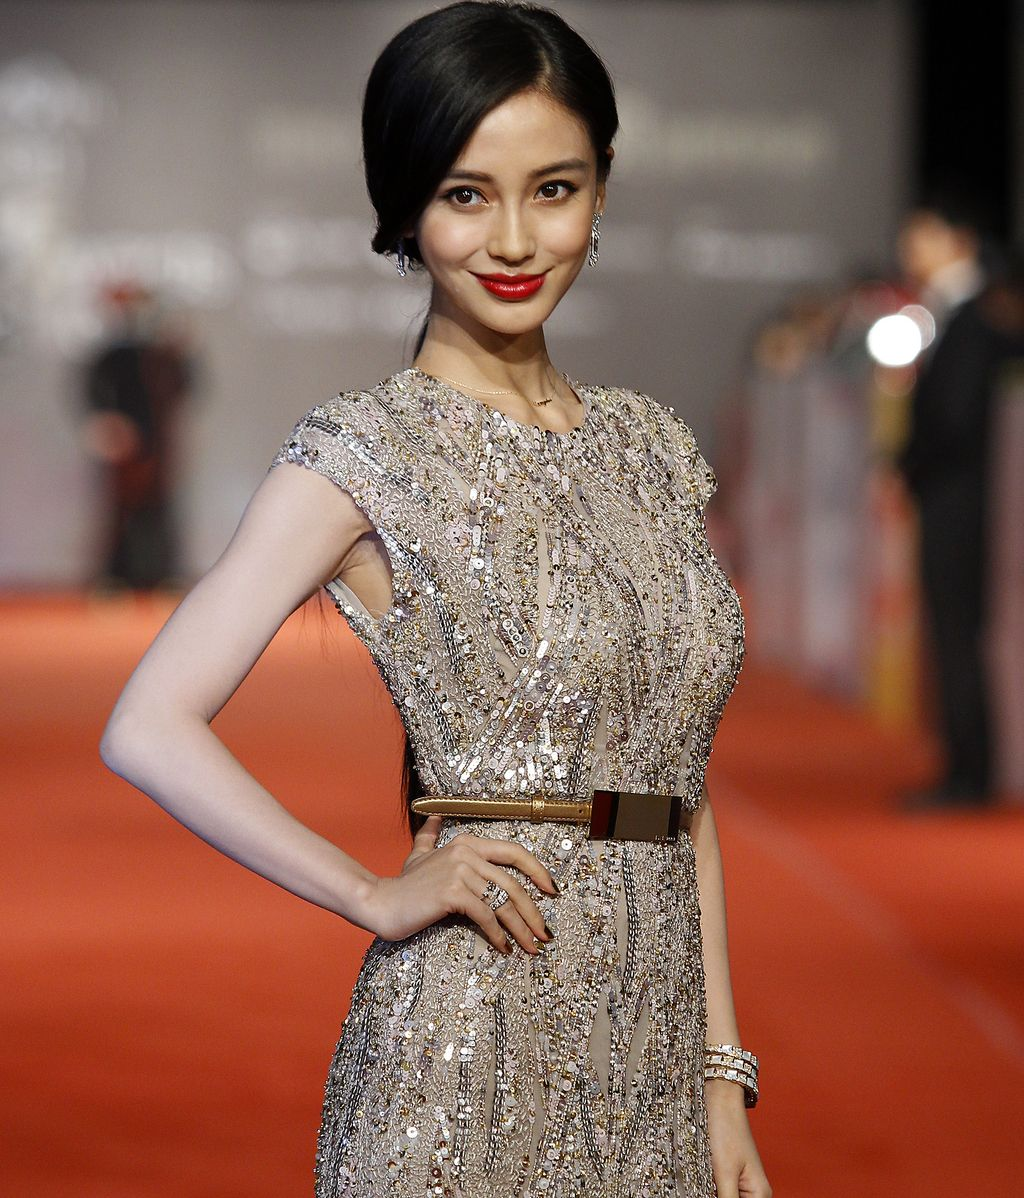 La actriz Angela Yeung Wing durante los Golden Hourse Film Award